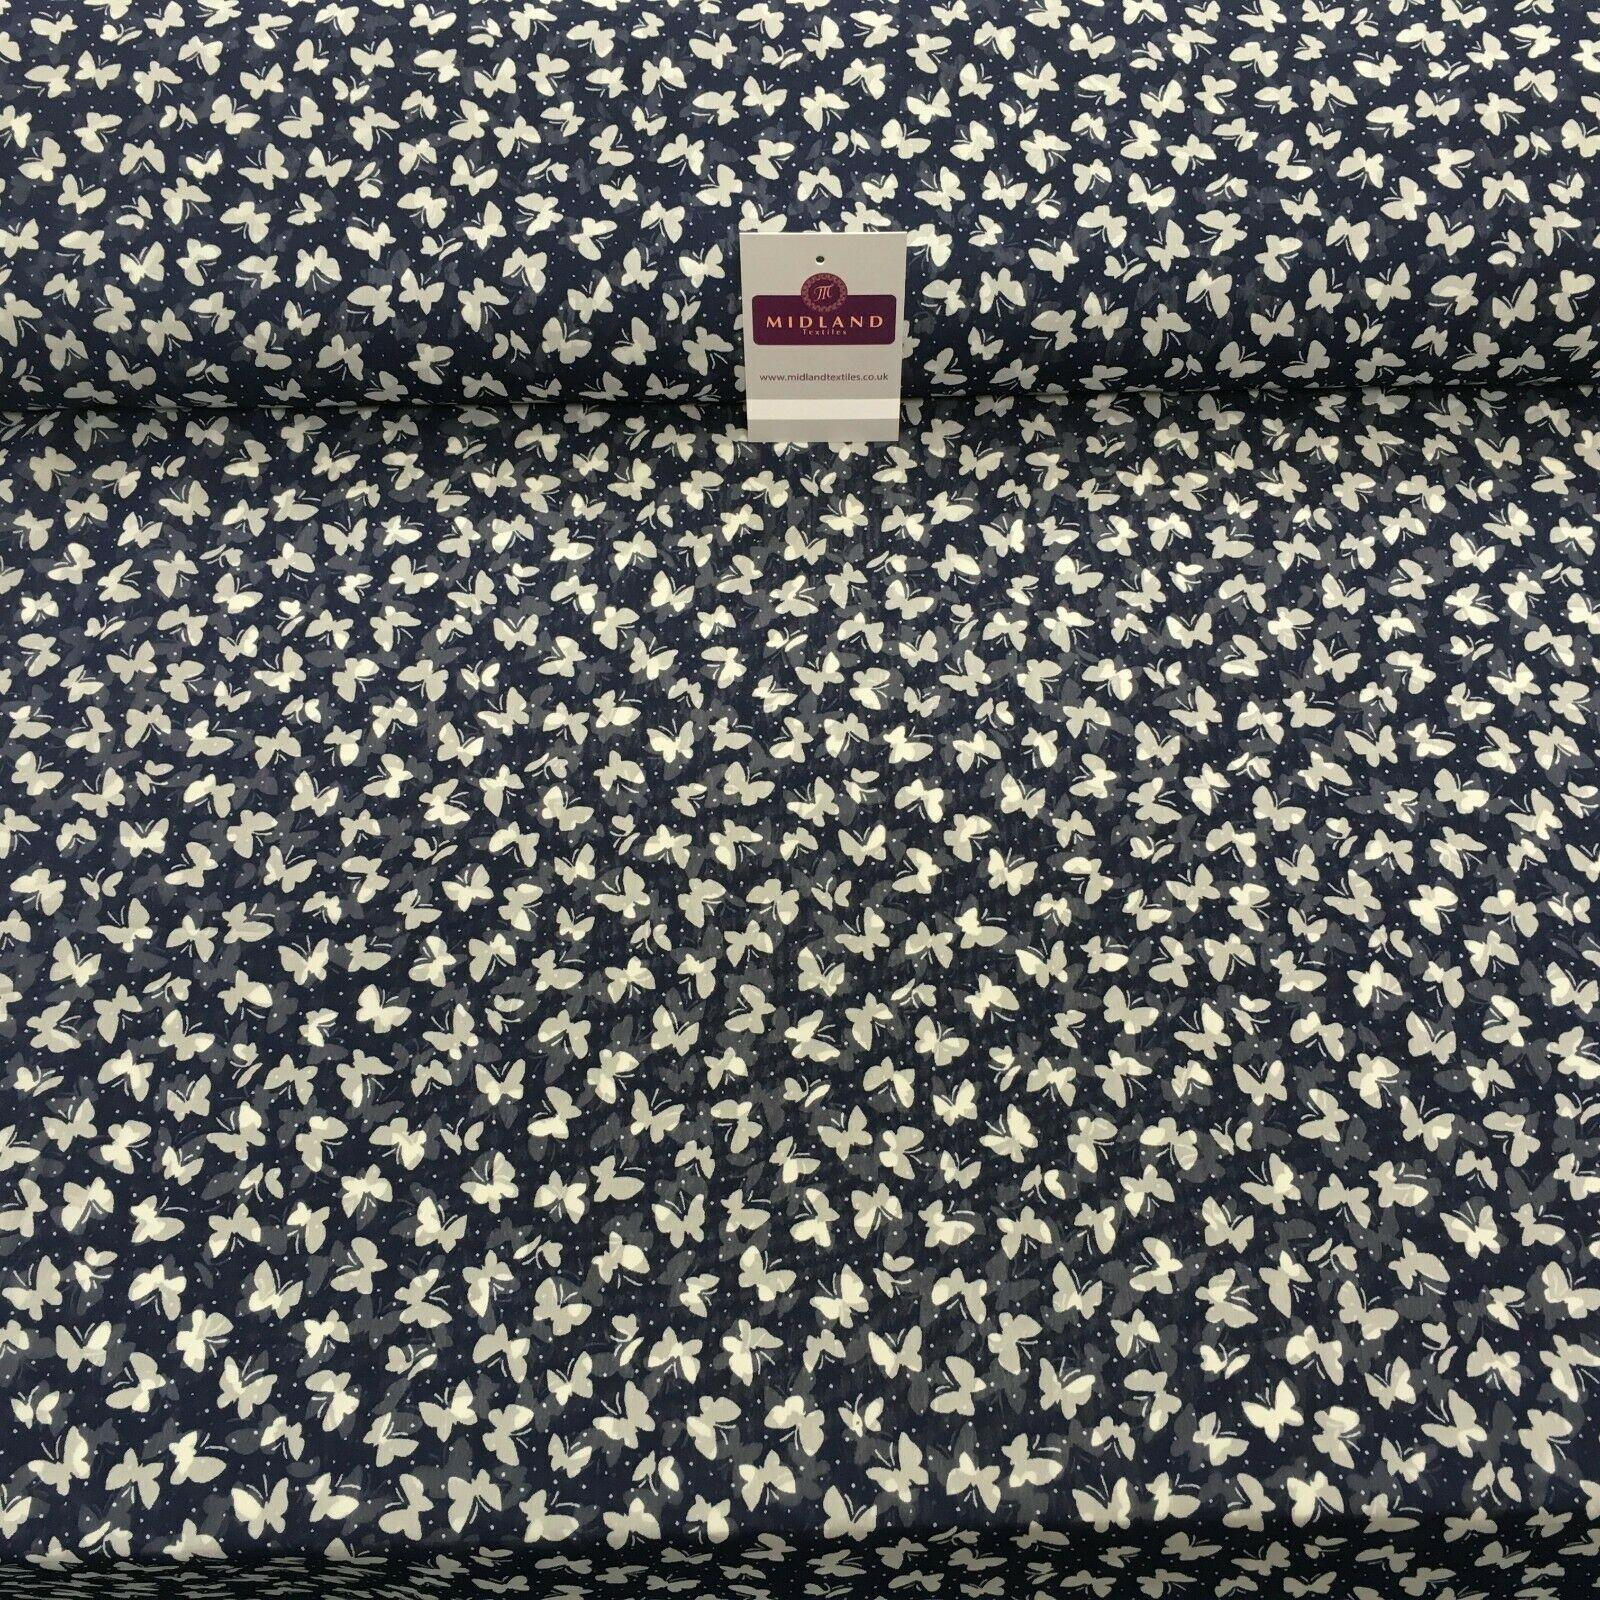 Navy Silhouette Butterfly Printed Light Chiffon Fabric 150 cm Wide MK1084-4